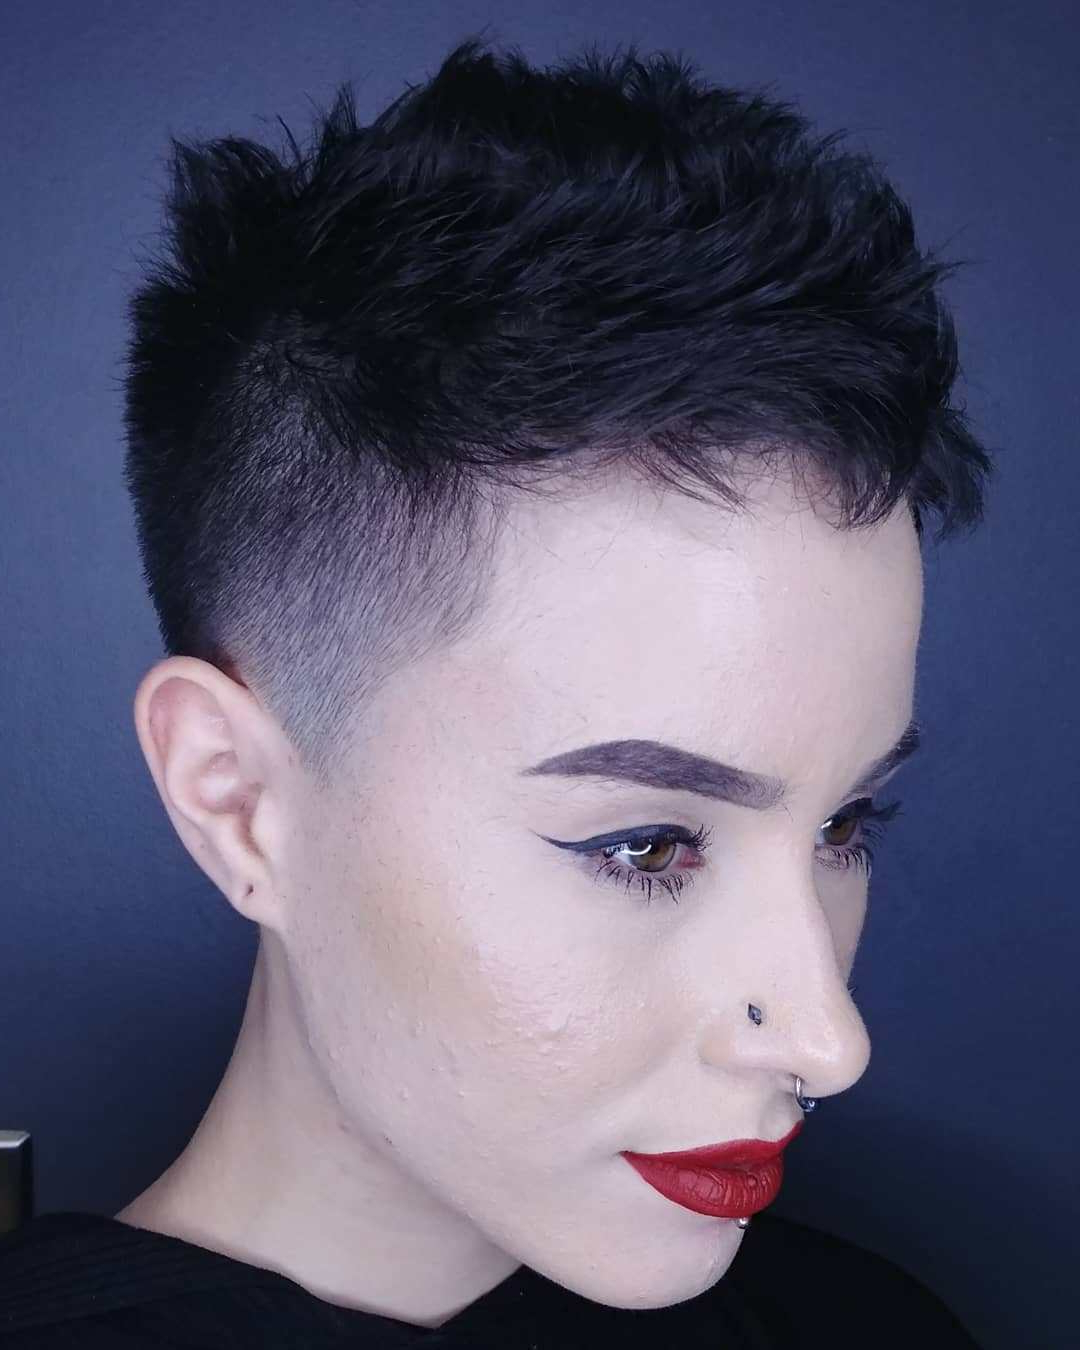 Well Known Shaved Sides Pixie Hairstyles Intended For Short Pixie Cuts With Shaved Sides – 15+ (View 11 of 20)